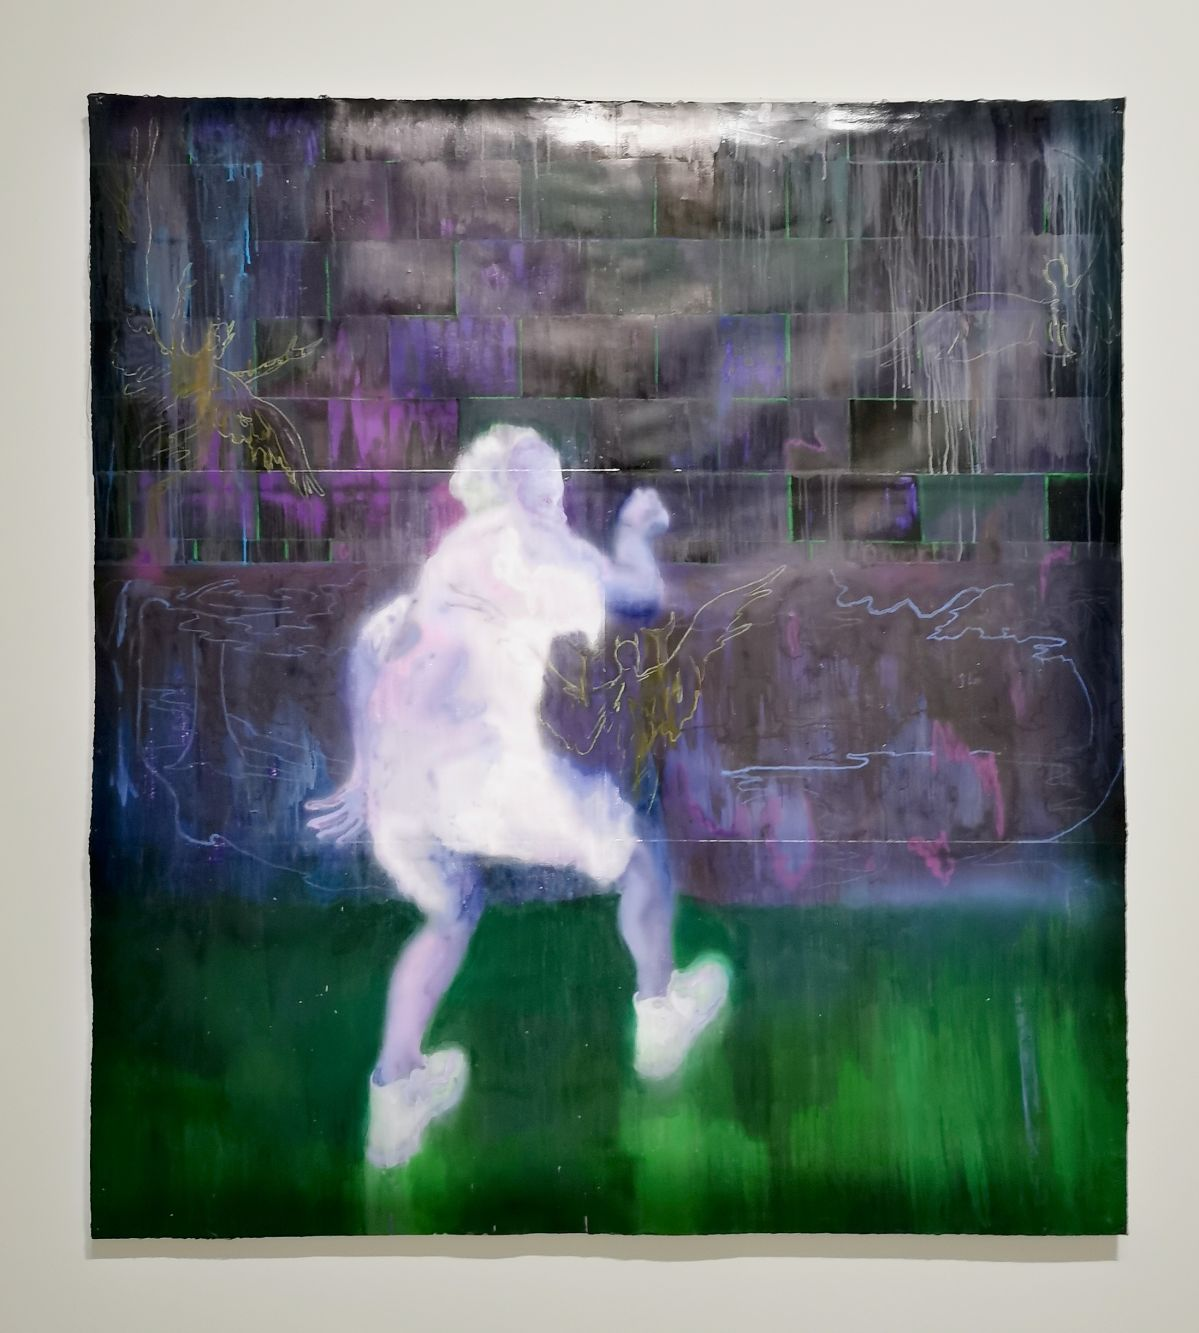 Sedrick Chisom - In The 22nd Century Ghosts N Goblins Walked In This Land, 2019 - Possédé·e·s au MO.CO. Panacée